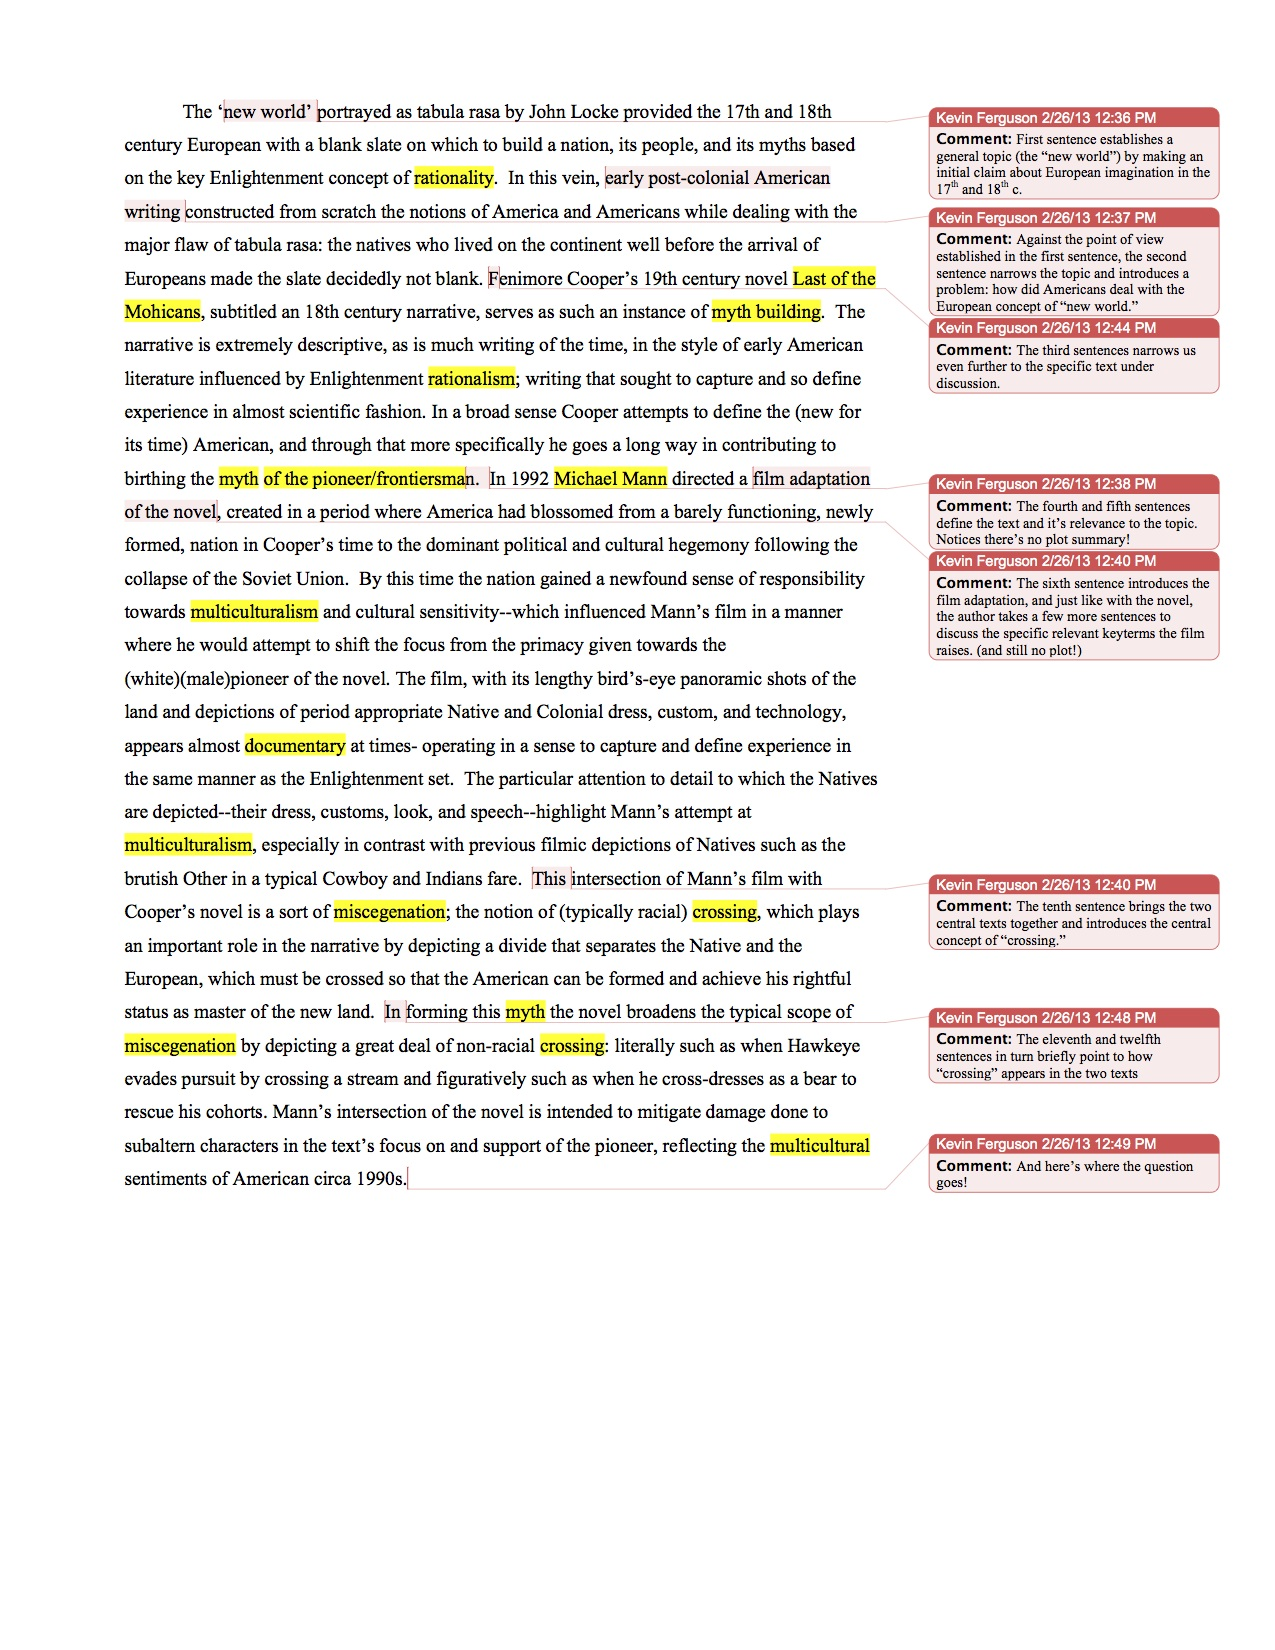 Annotated essay example